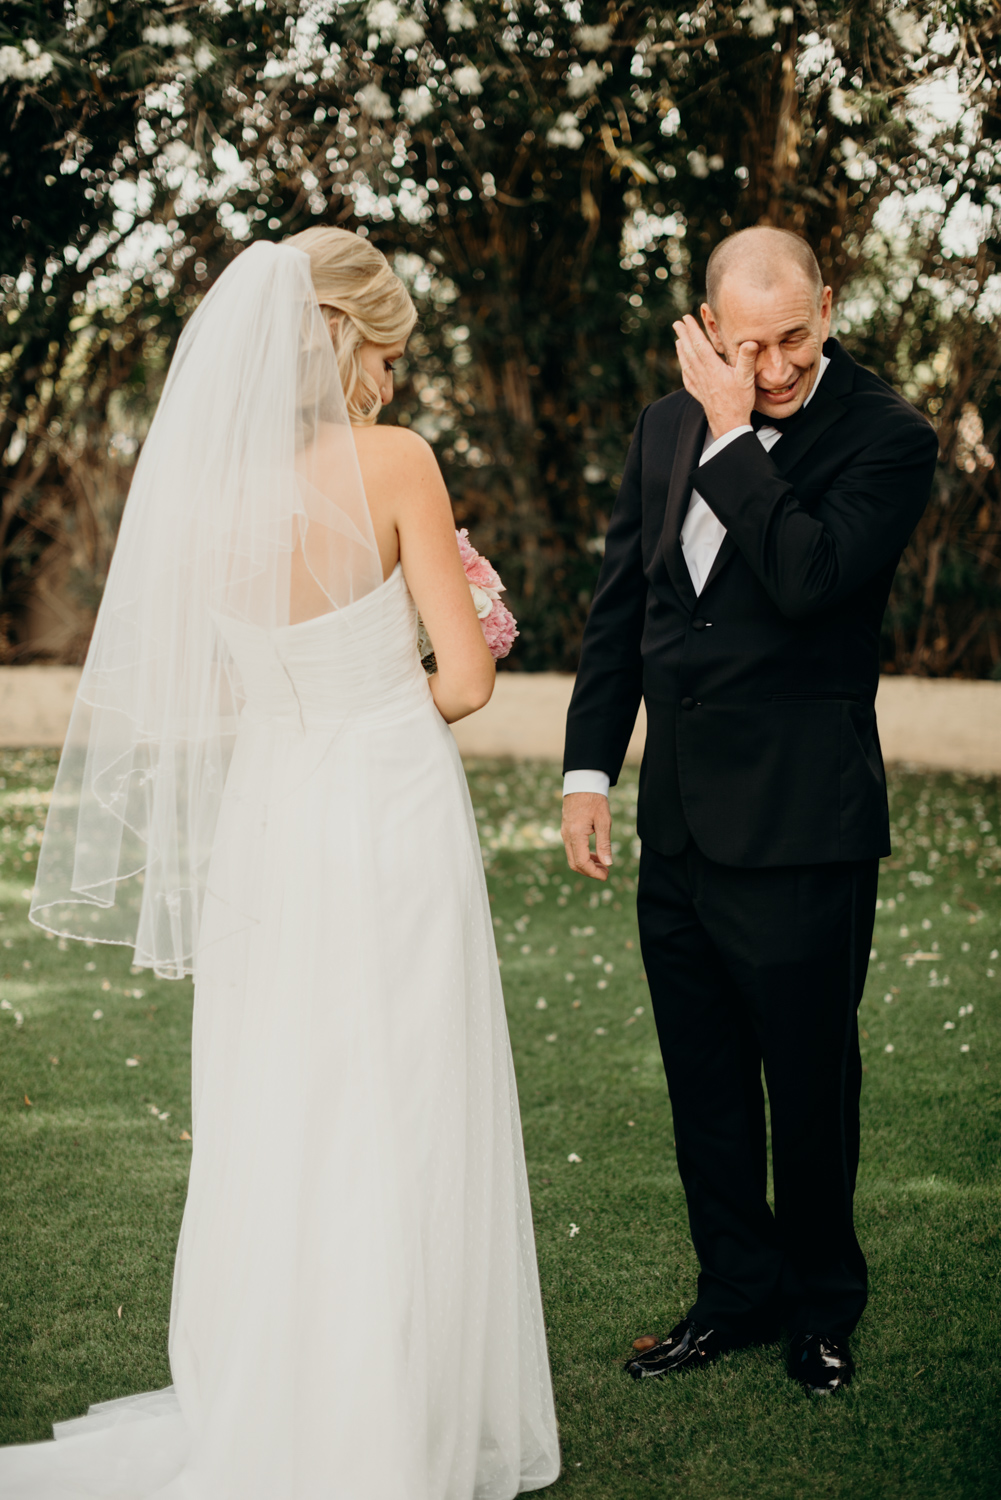 Bride's dad gets emotional when he sees his daughter on her wedding day in Gilbert, Arizona.